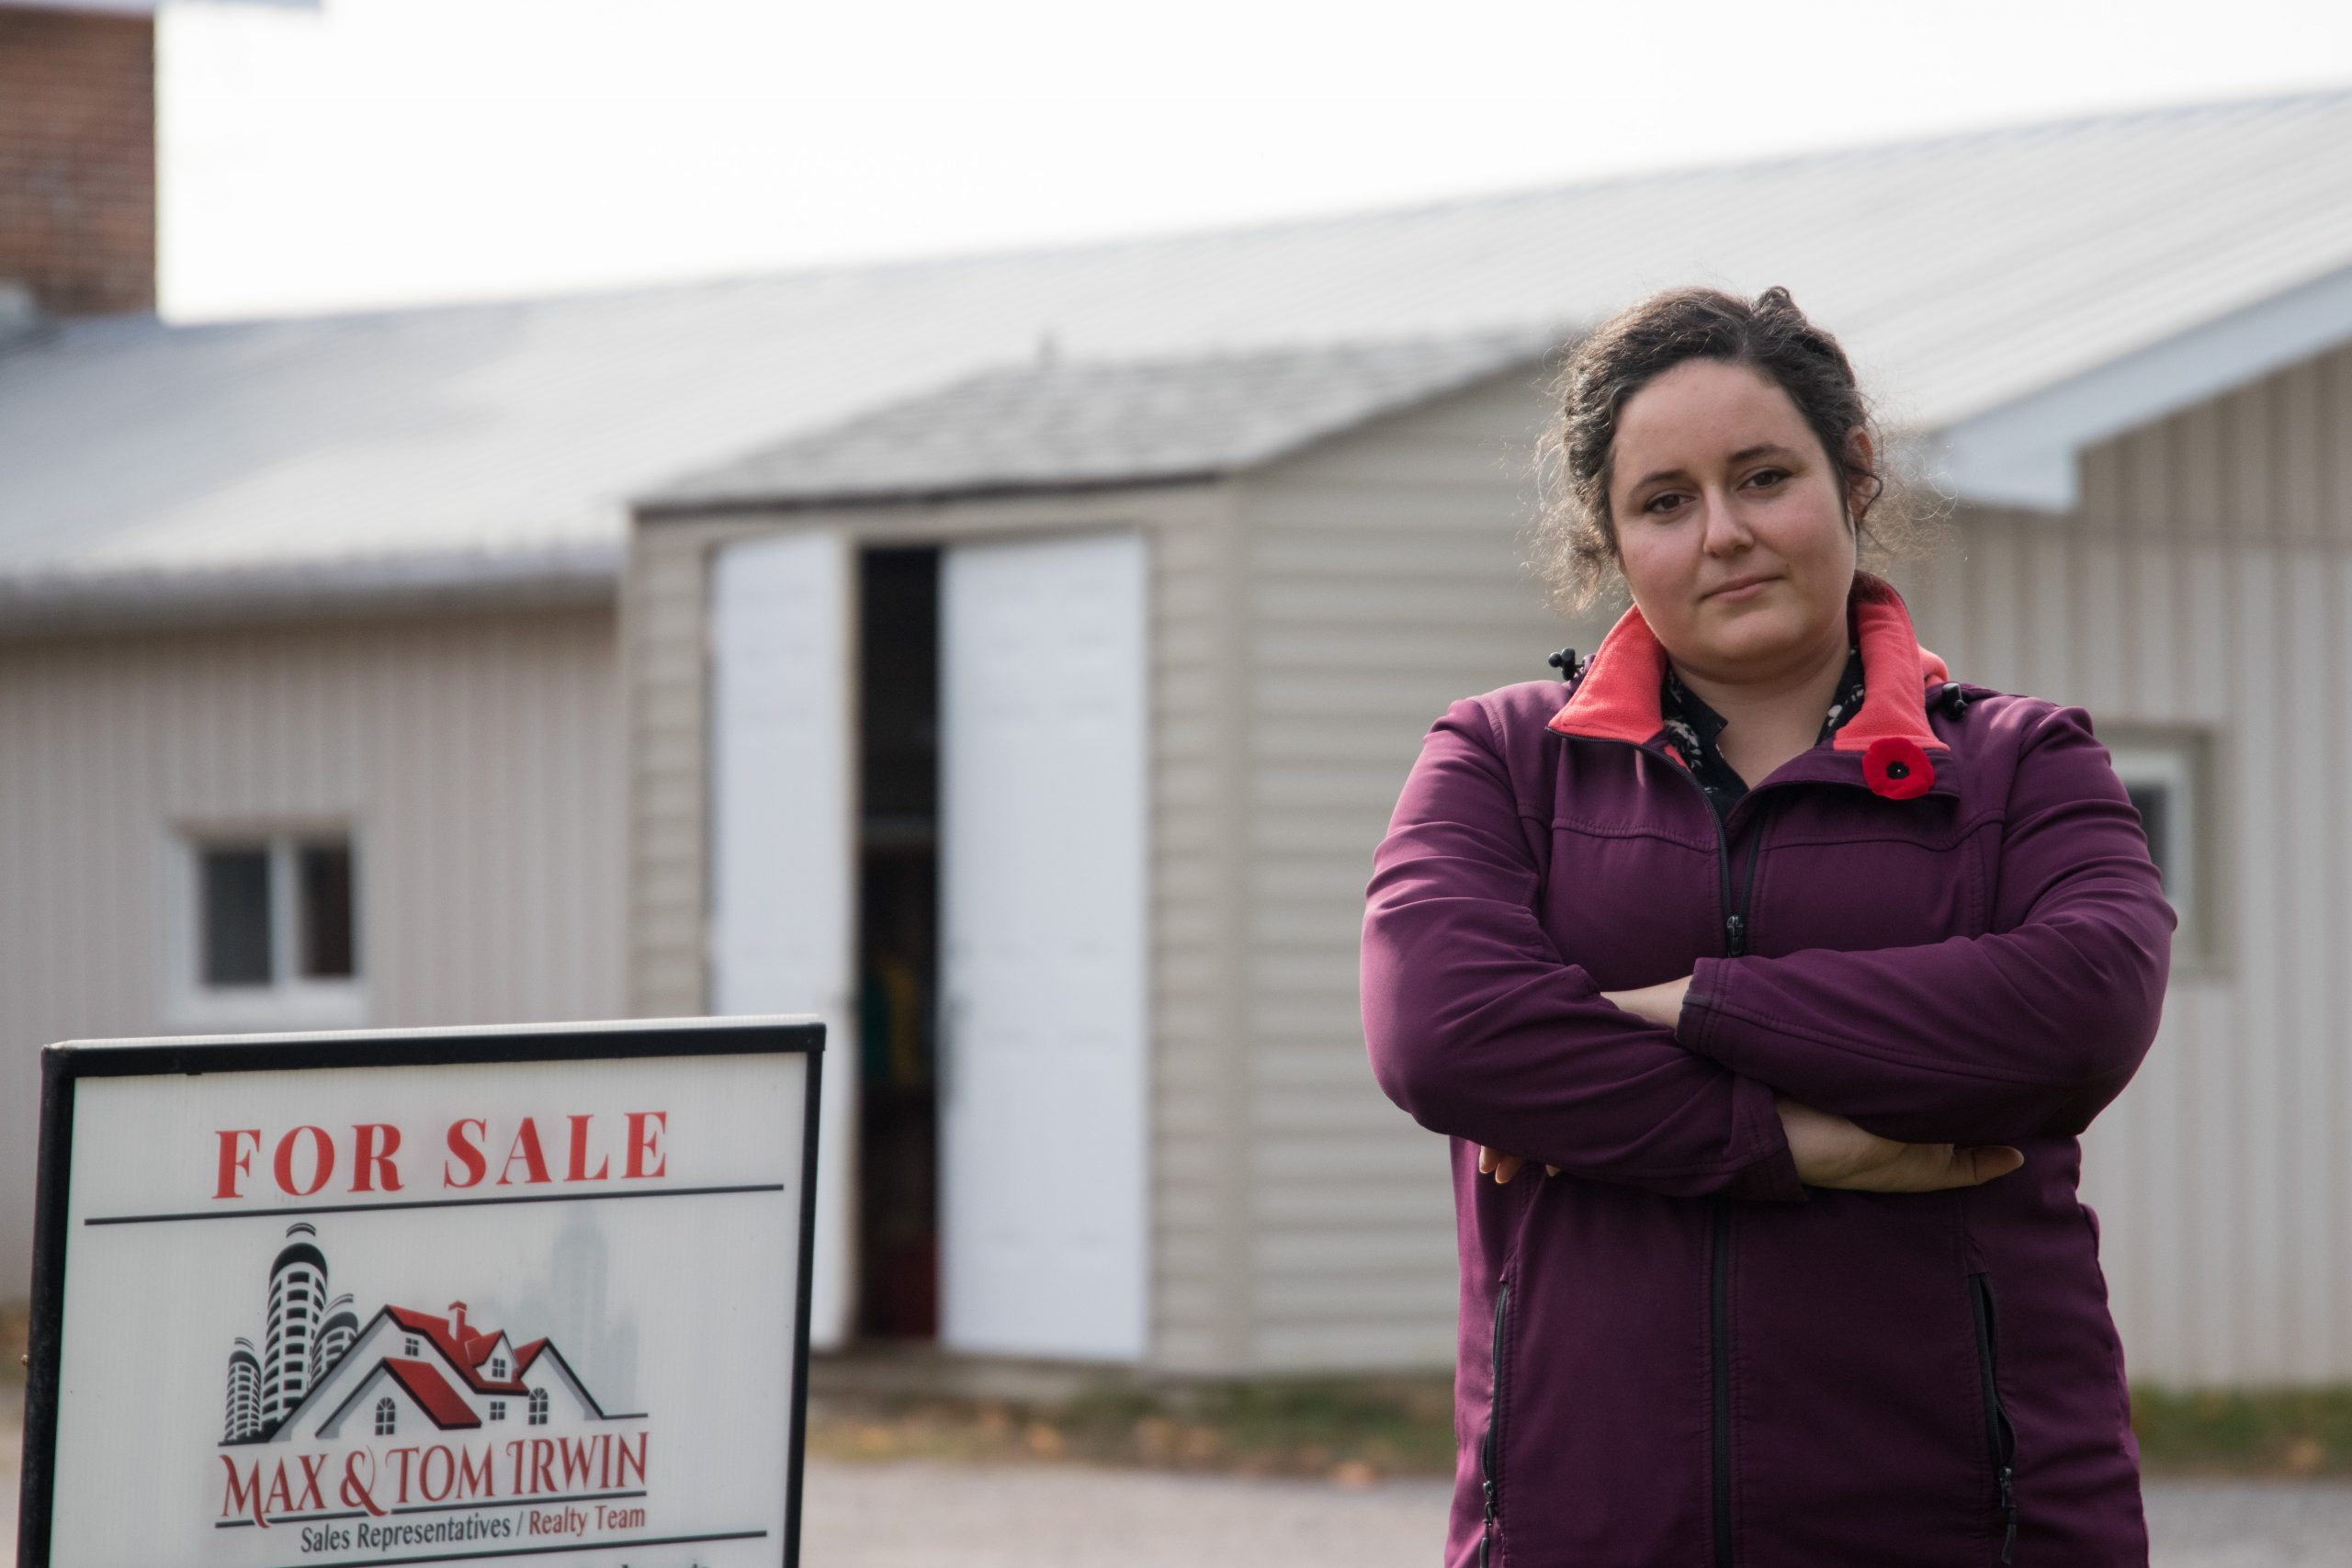 Kate Dorotheou, prospective fist time home owner